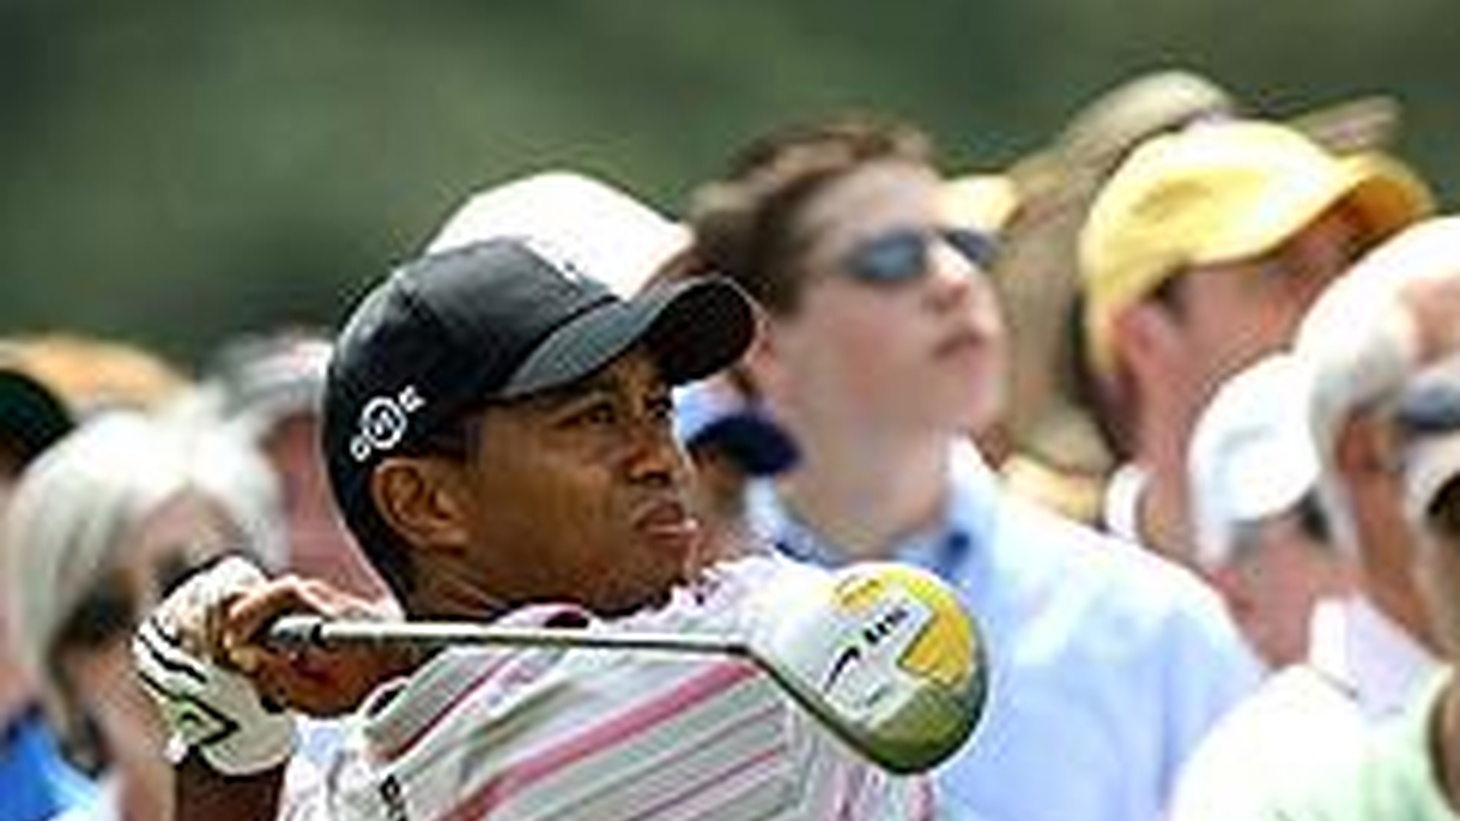 The fabled Masters golf tournament is under way as of today down in Augusta, Georgia. Tiger is of course the story. Tiger. The greatest crossover sports star since Mohammed Ali. Tiger. The paradox of today's sports world. He's both the greatest element of this era of golf, and he's what's wrong with this era of golf...